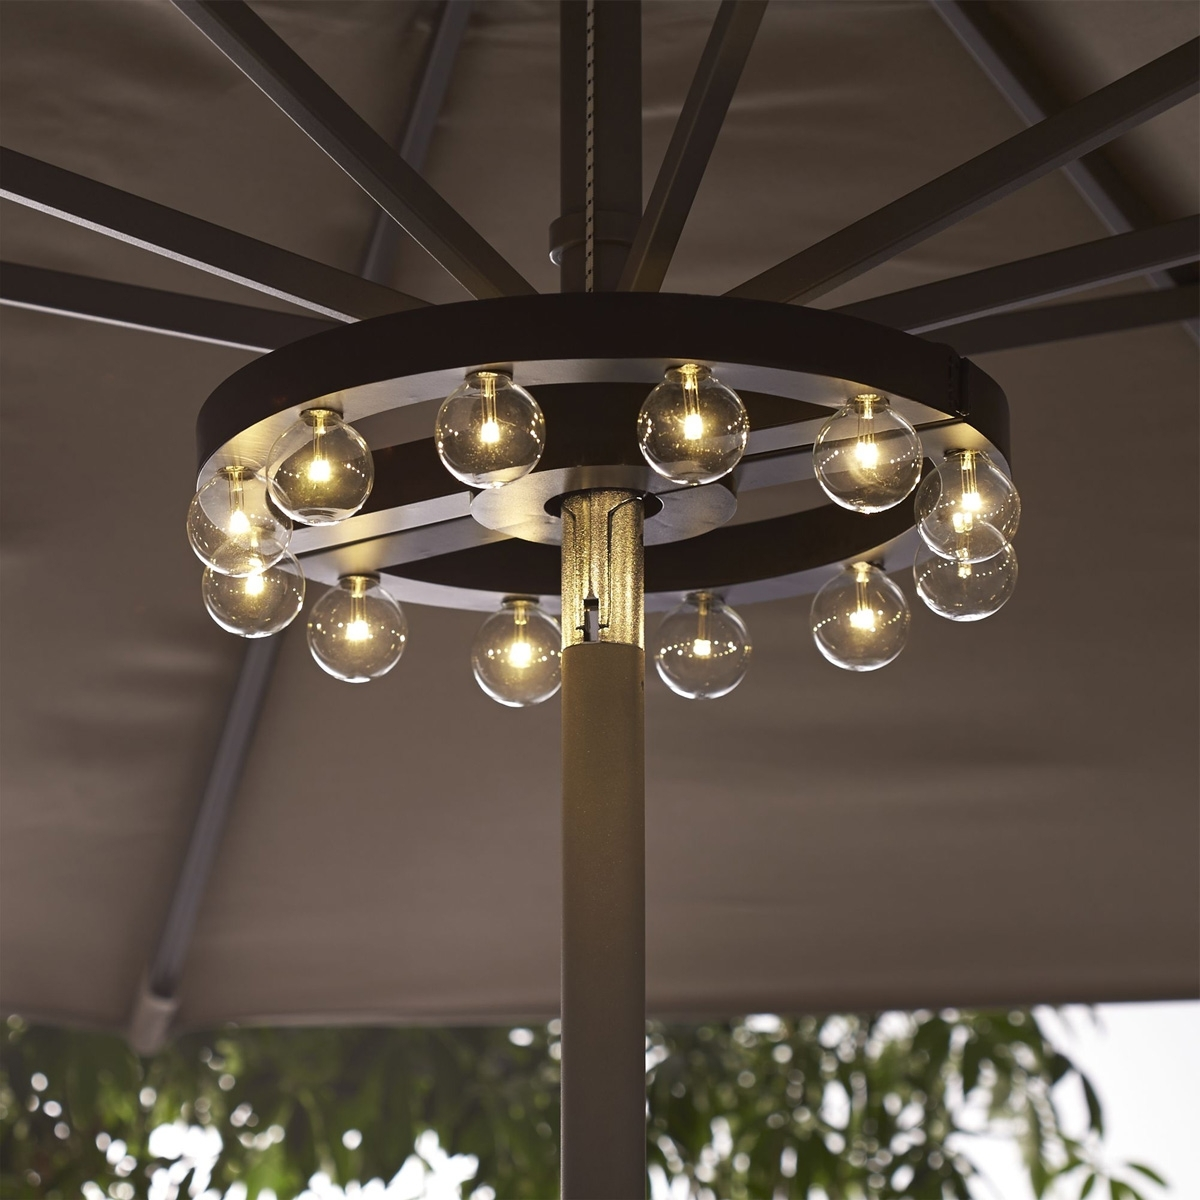 Current Lighted Patio Umbrellas With Regard To Patio Umbrella Light — Mistikcamping Home Design : Different Patio (View 6 of 20)